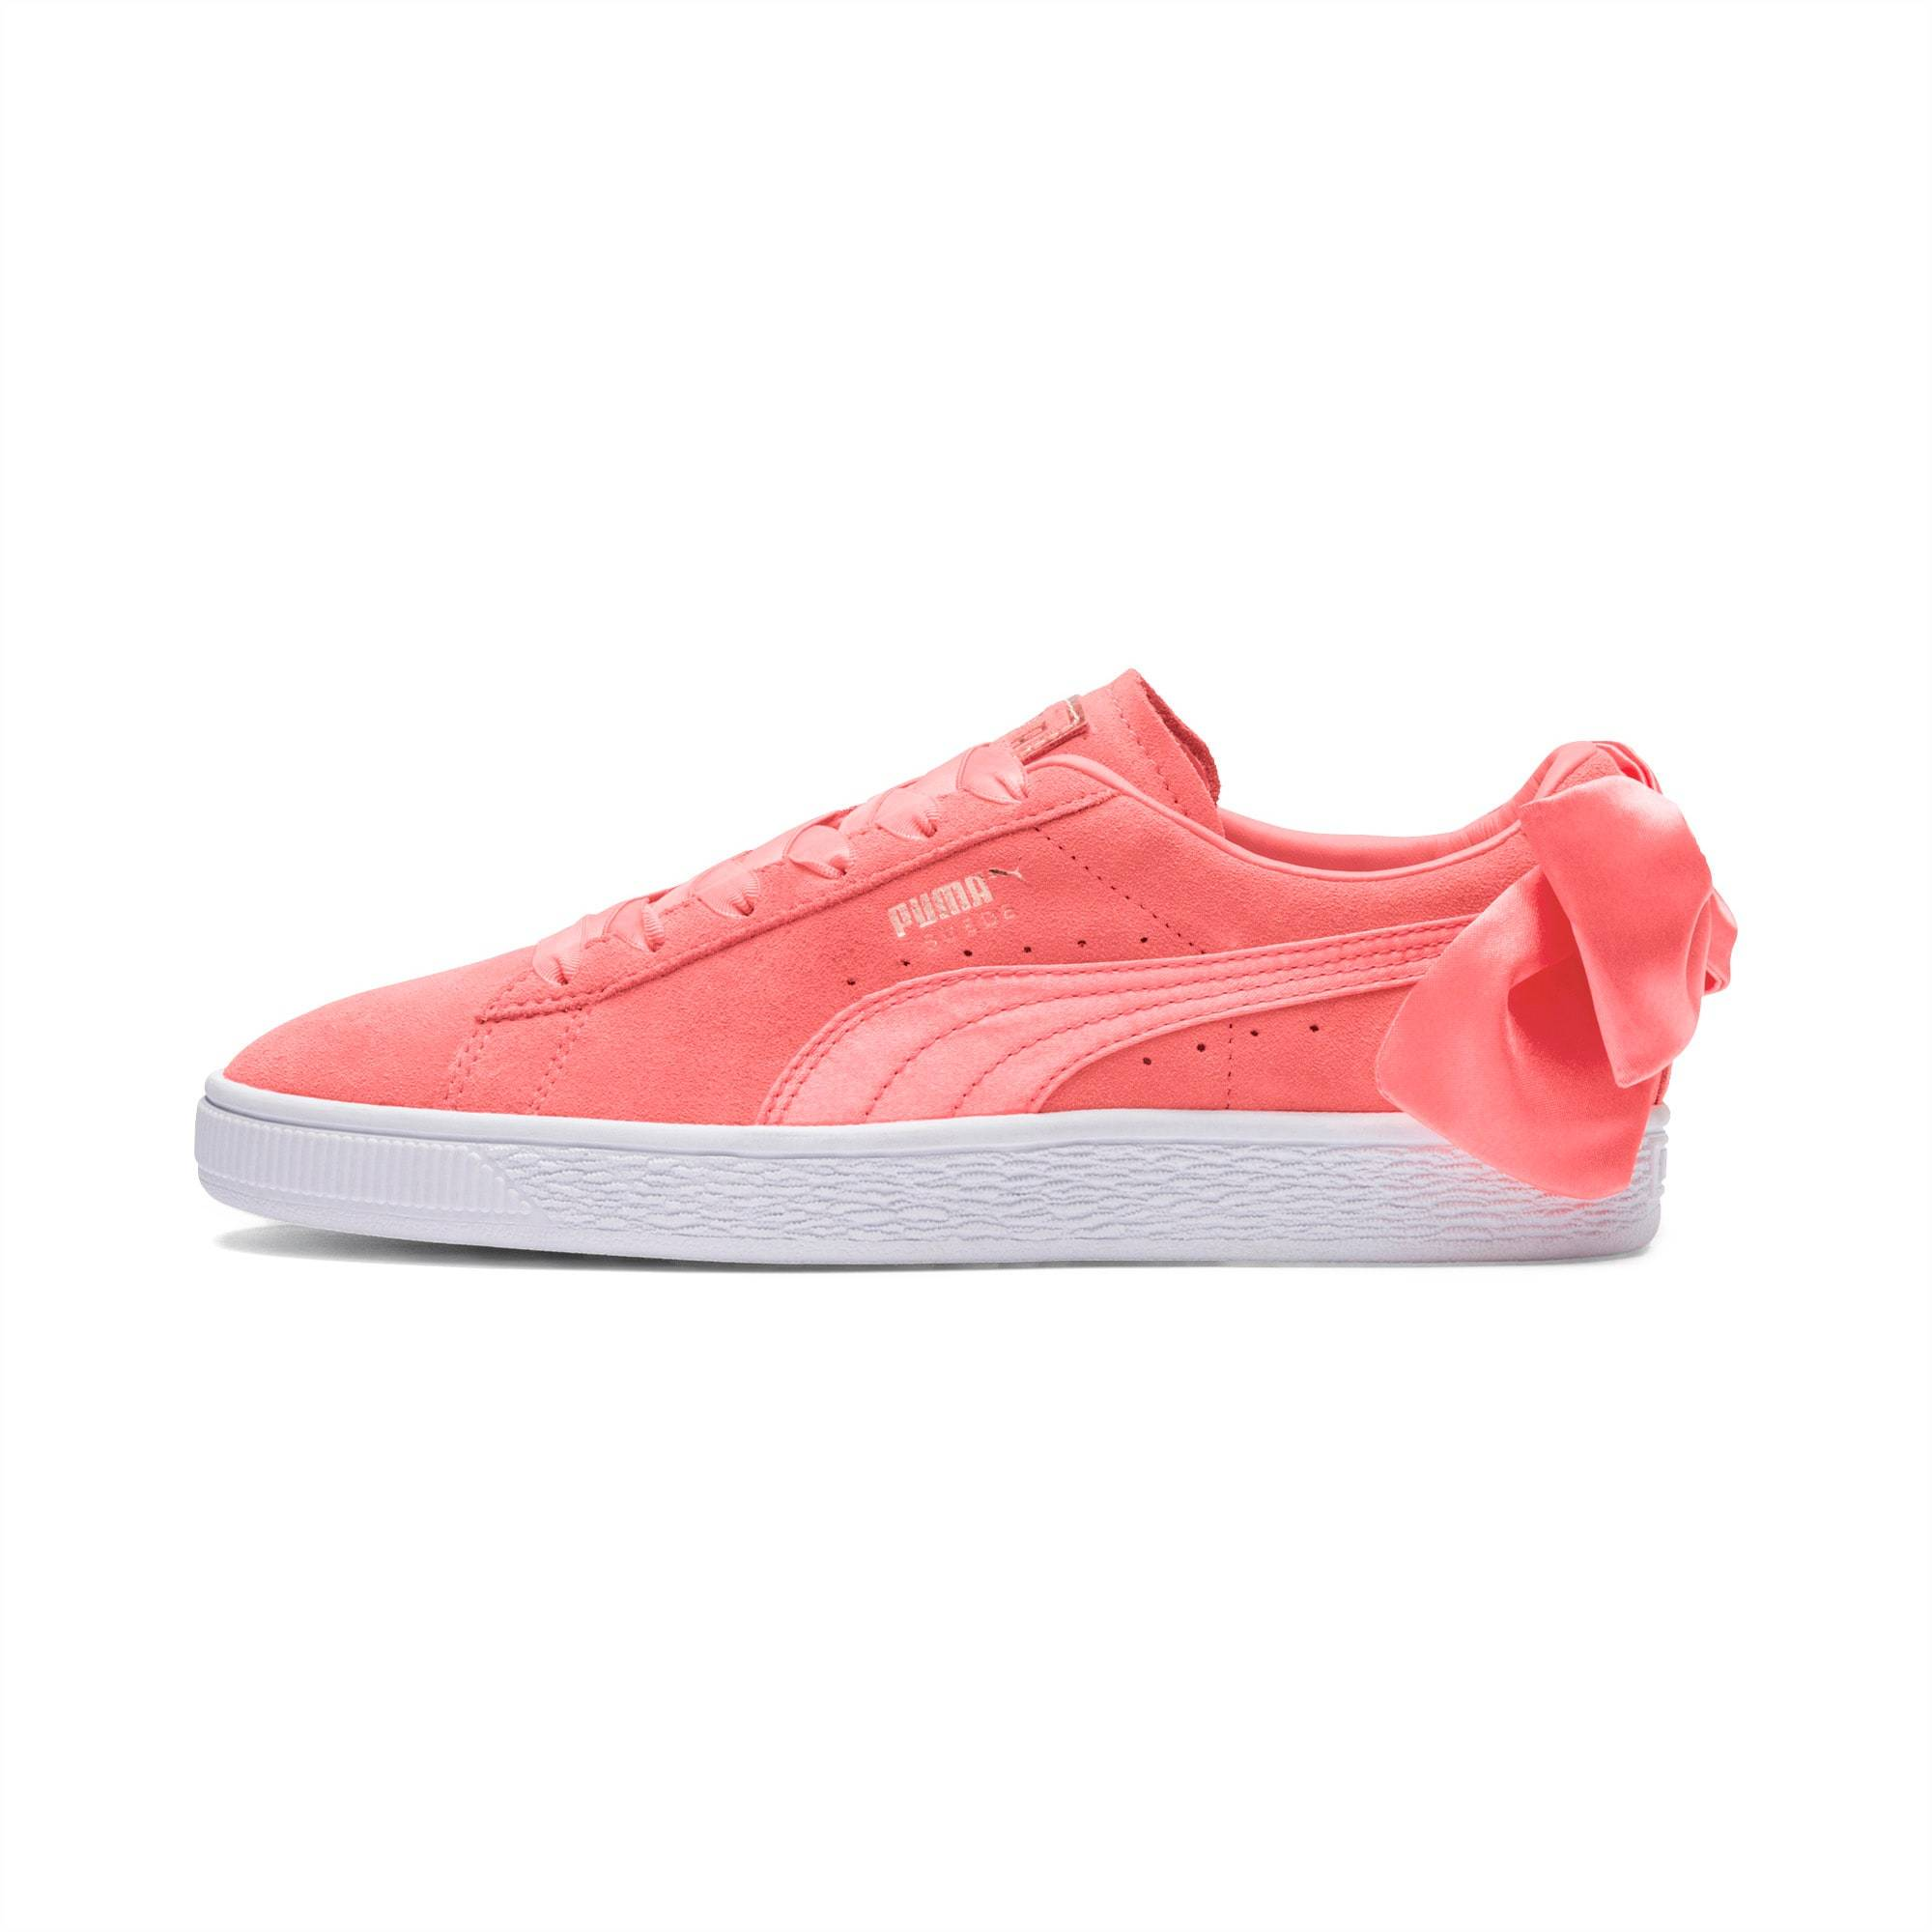 PUMA Chaussure Suede Bow pour Femme, Rose, Taille 37.5, Chaussures